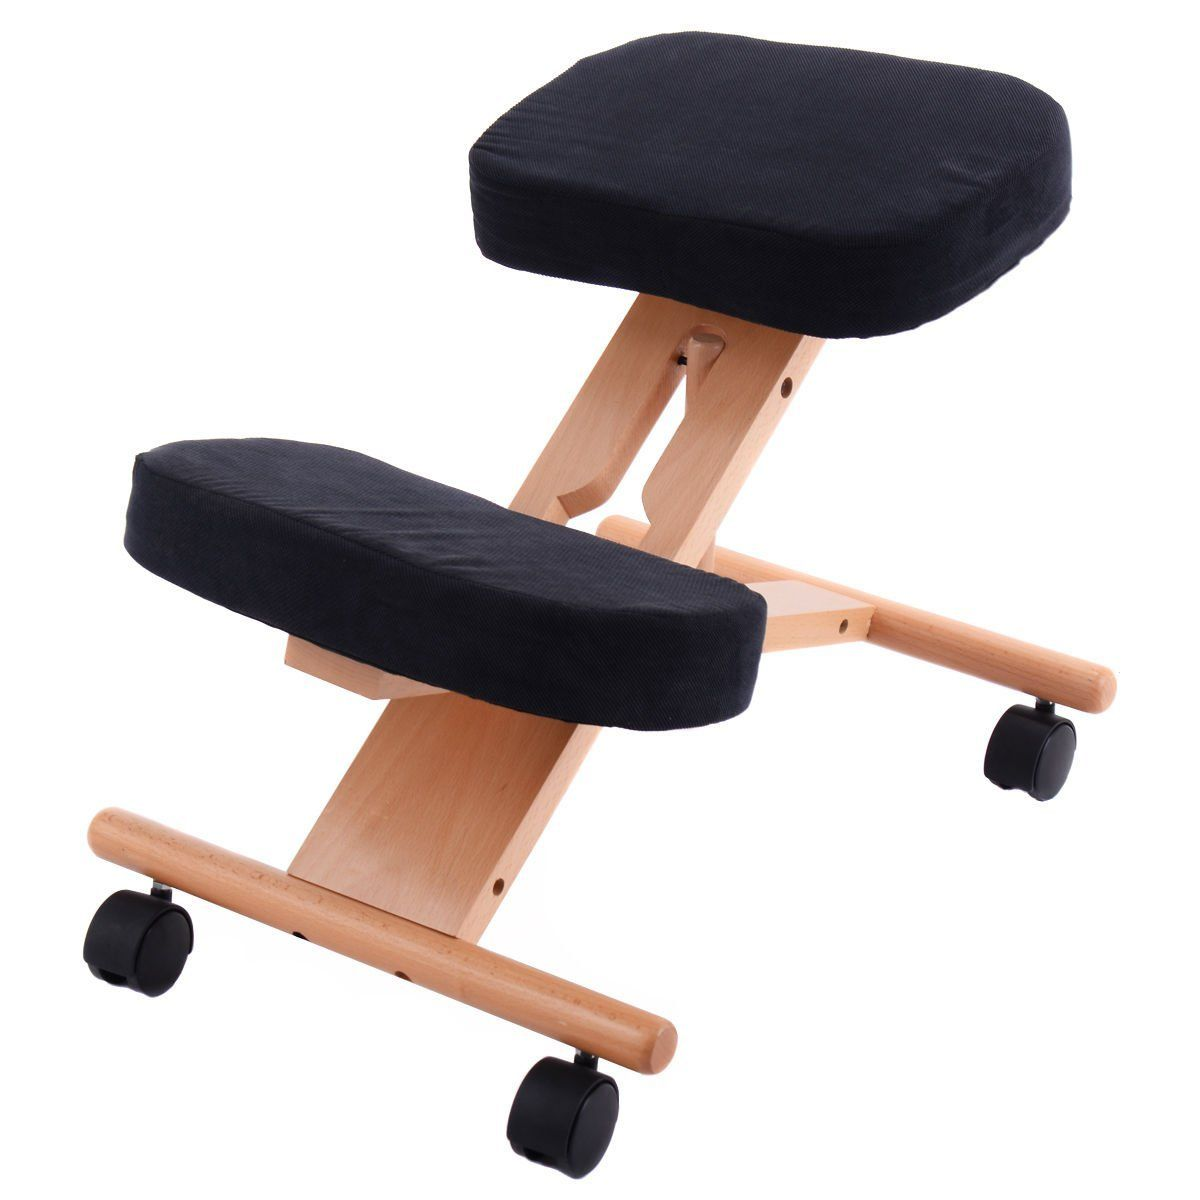 Ergonomic Chair Kneeling Best Ergonomic Kneeling Chair For Your Money 2017 Review